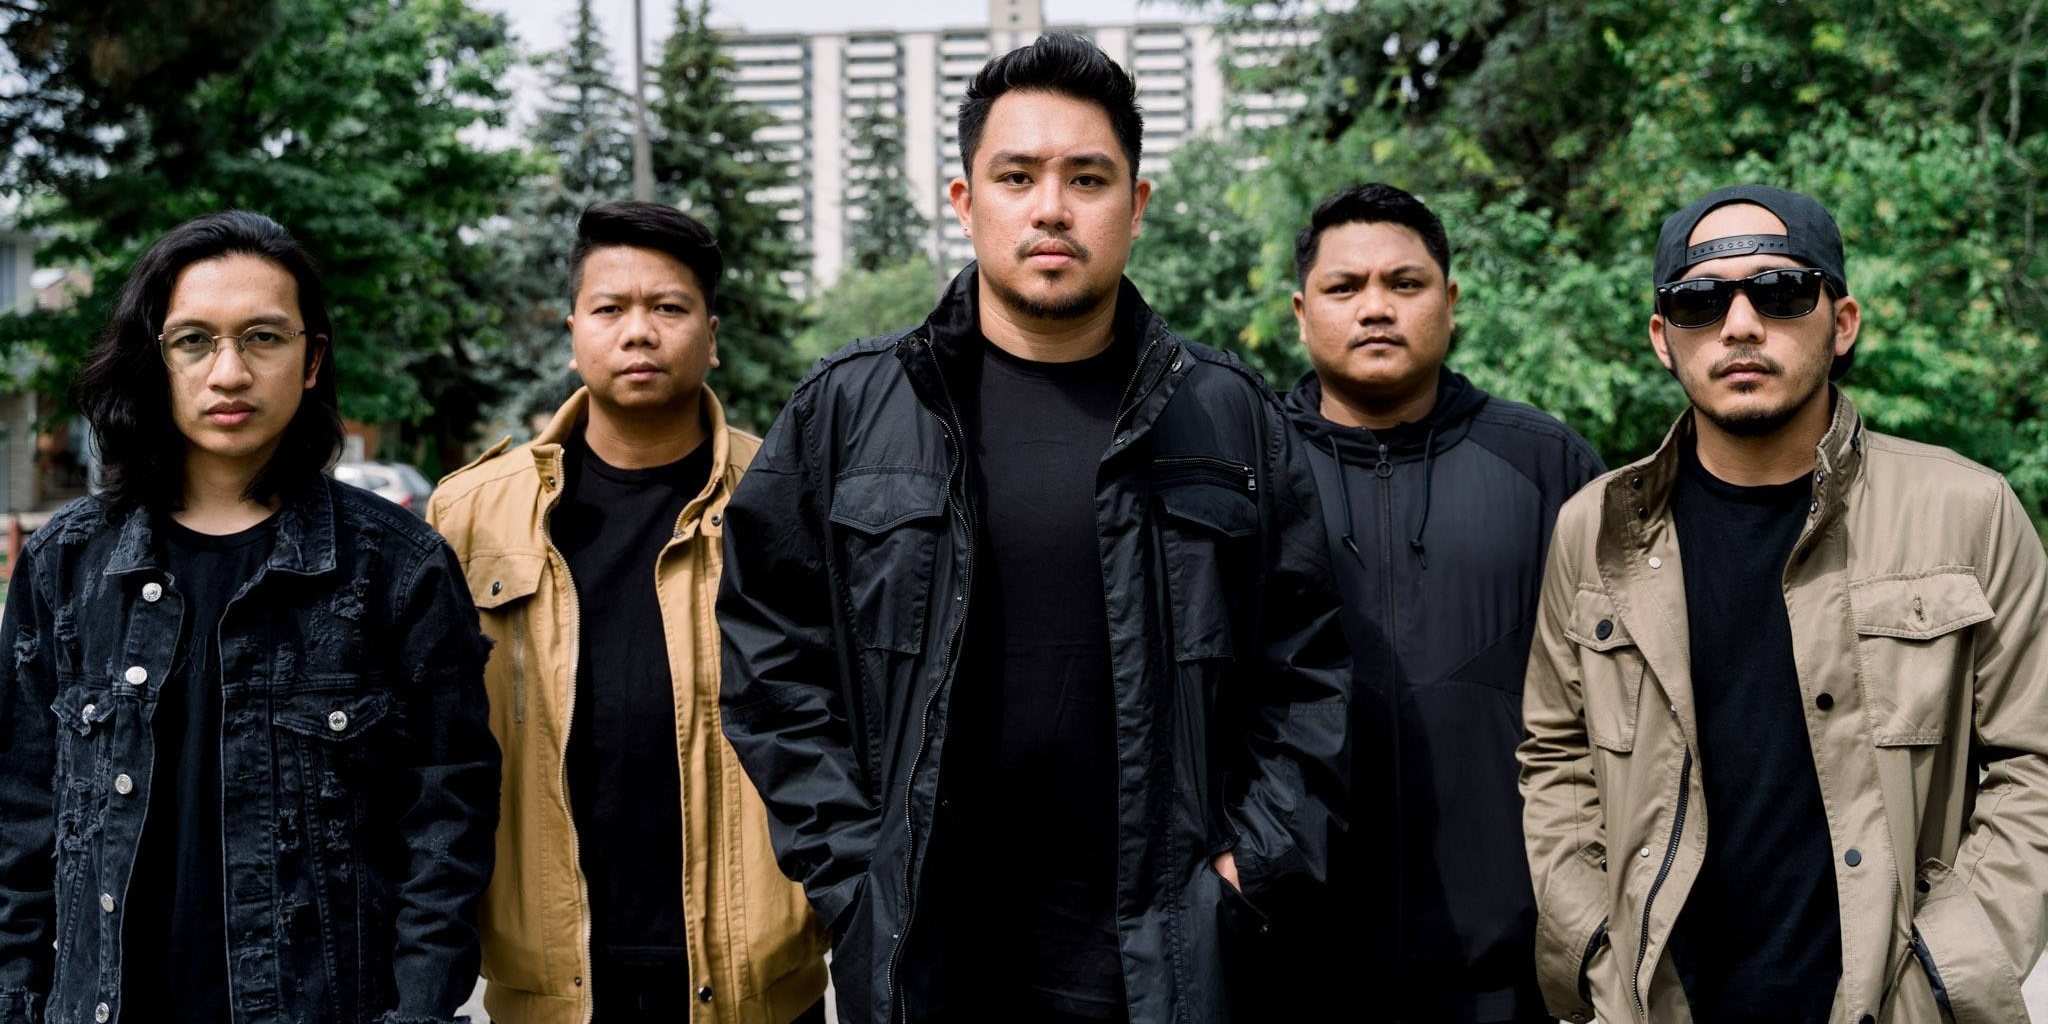 December Avenue release emotional 'Huling Sandali' music video – watch